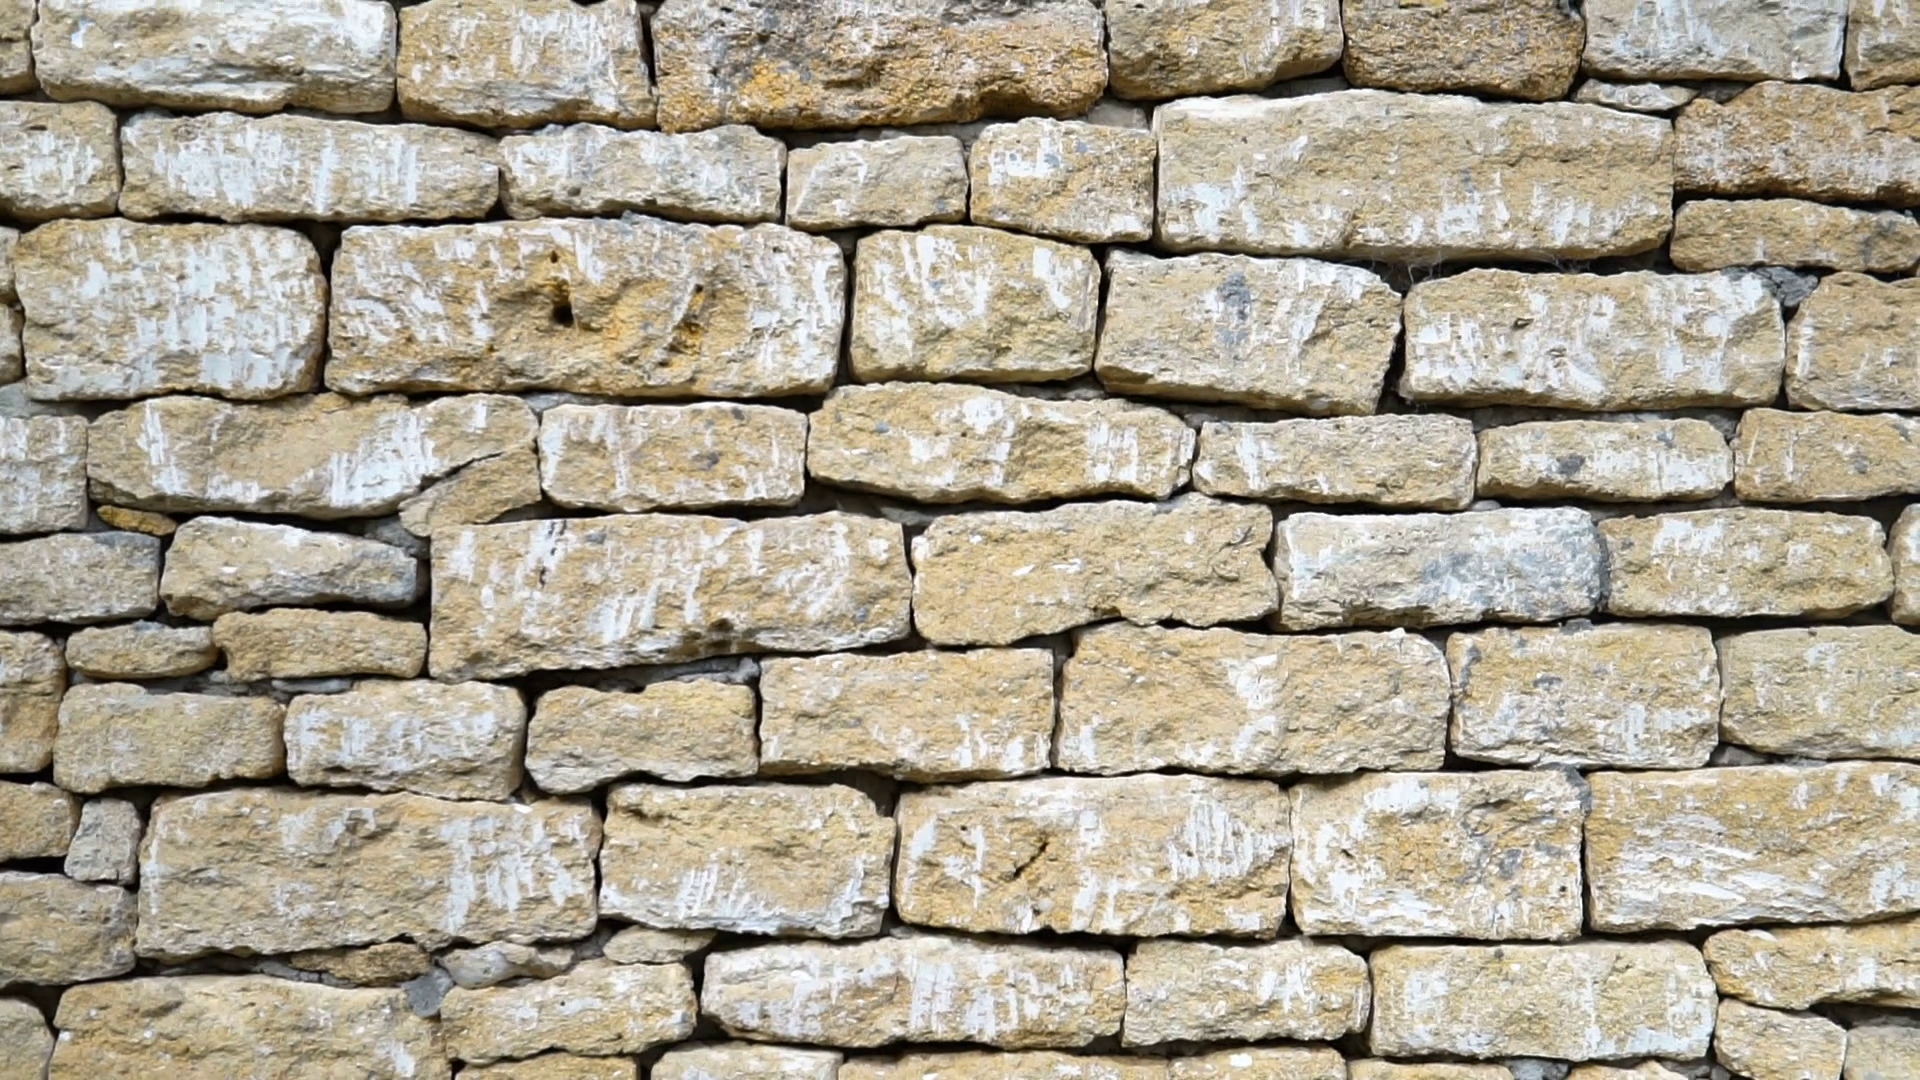 Texture of a stone wall. Old castle stone wall texture background. Stone  wall as a background or texture. Camera moving. Stock Video Footage.